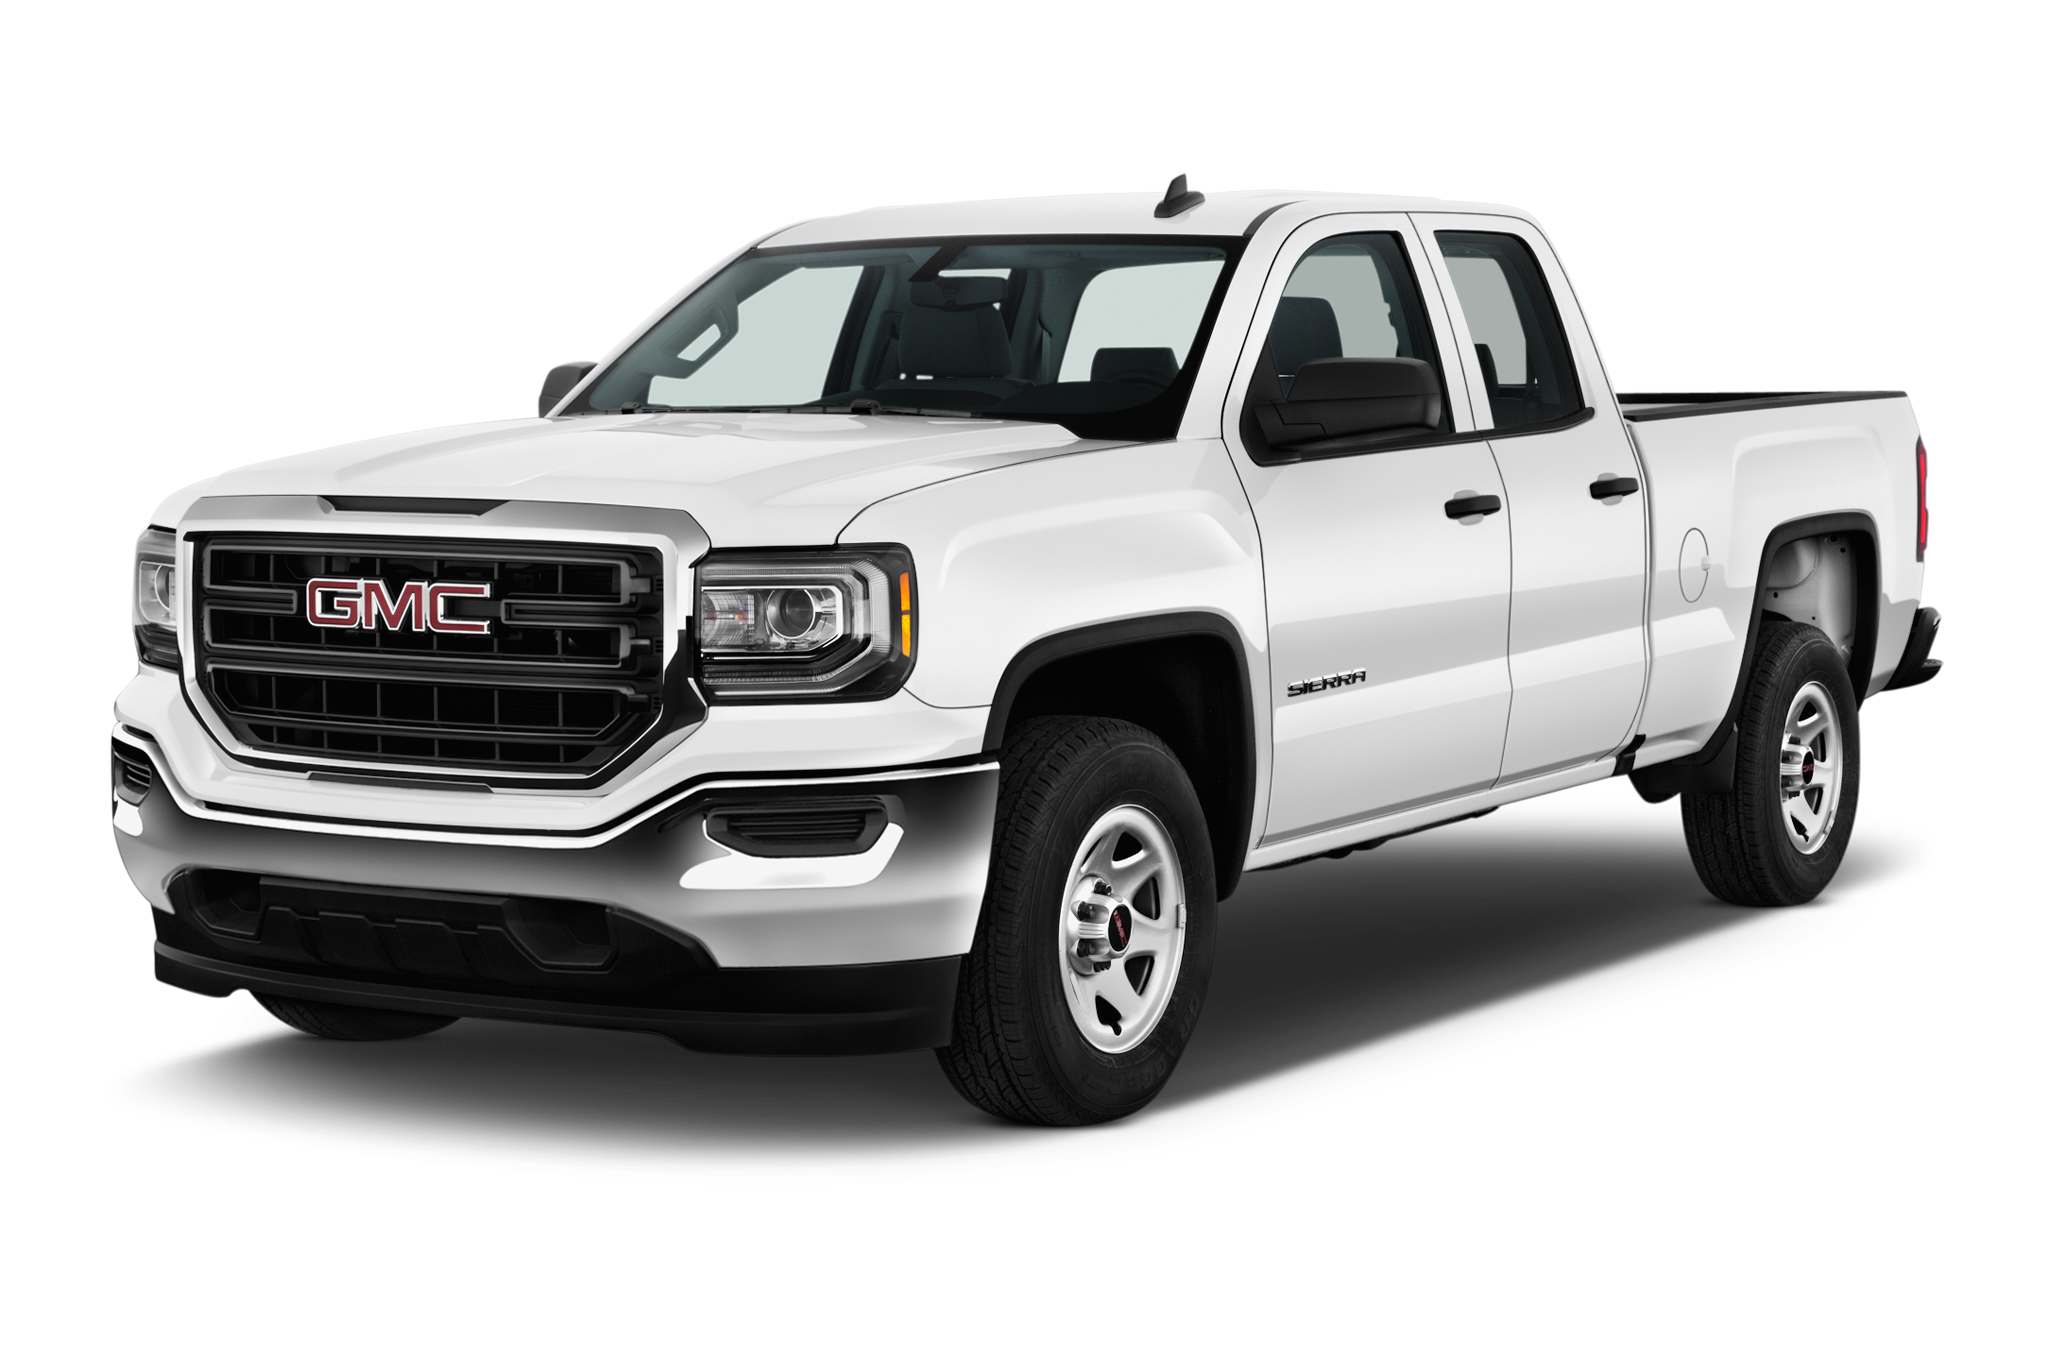 2017 gmc sierra 1500 base double cab standard box specs and features msn autos. Black Bedroom Furniture Sets. Home Design Ideas